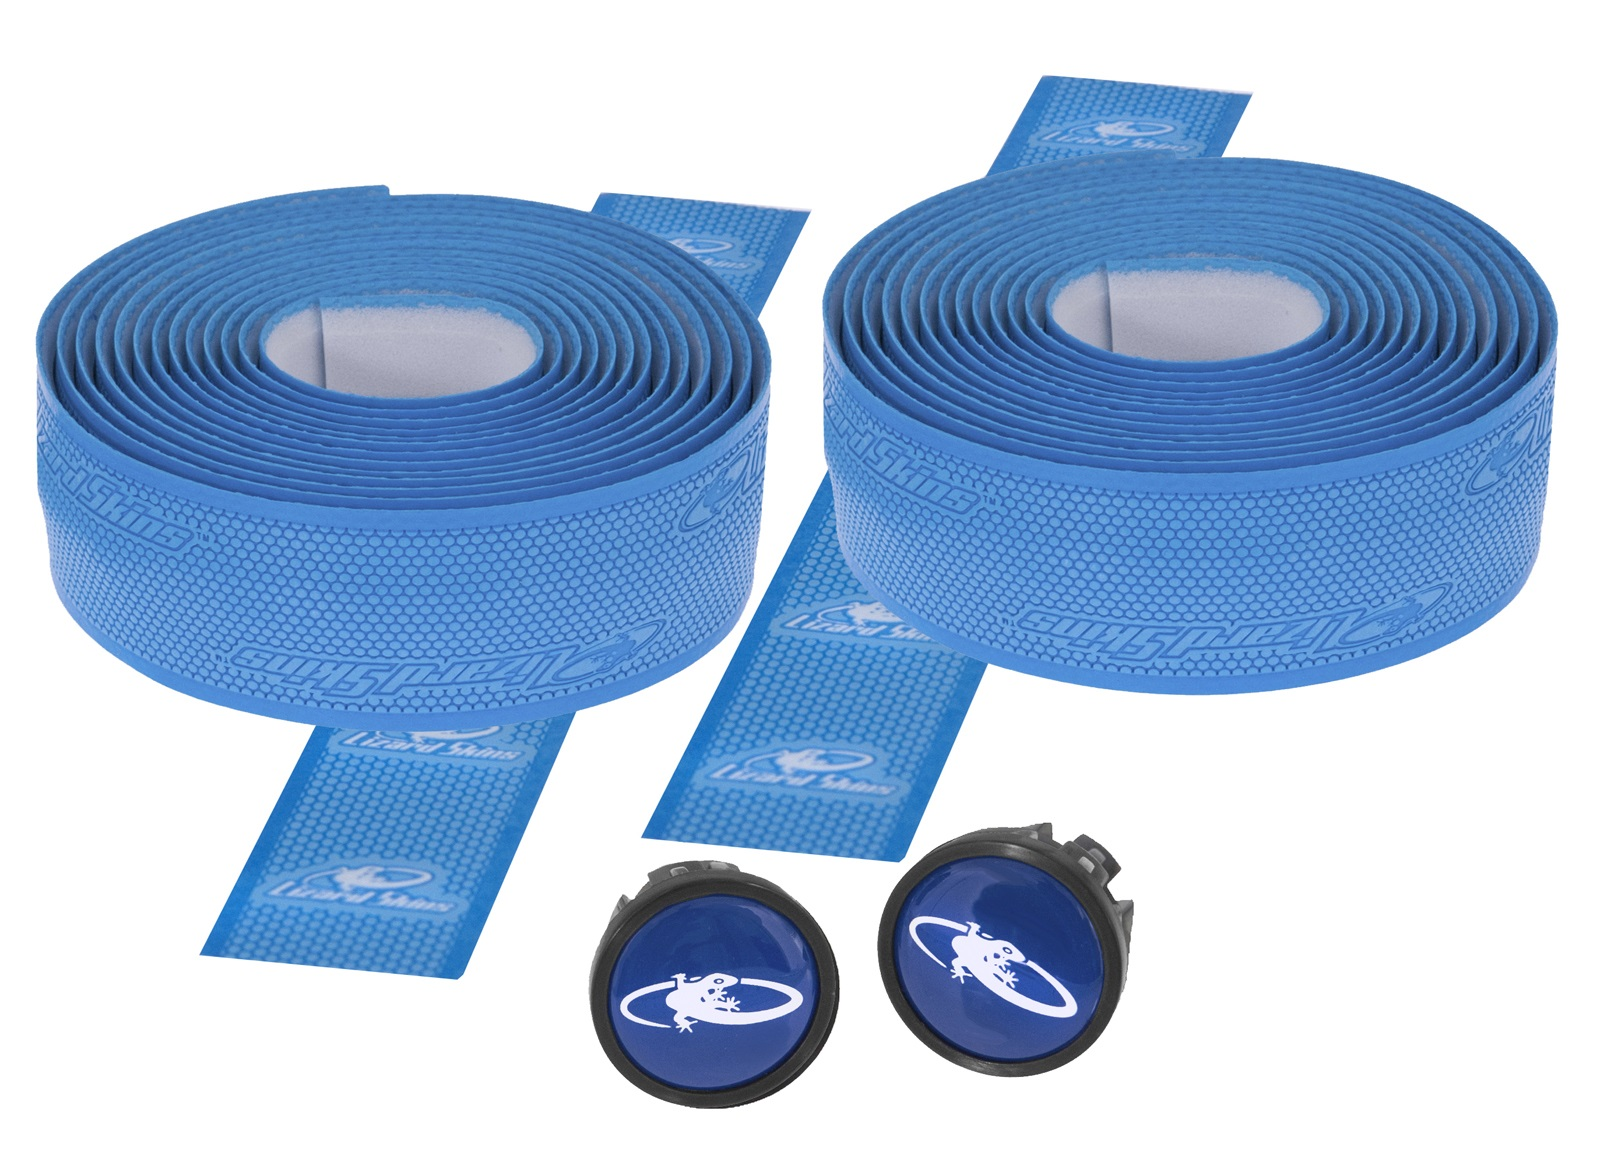 Lizardskins DSP 3.2 Handlebar Tape 3.2x226mm - Blue